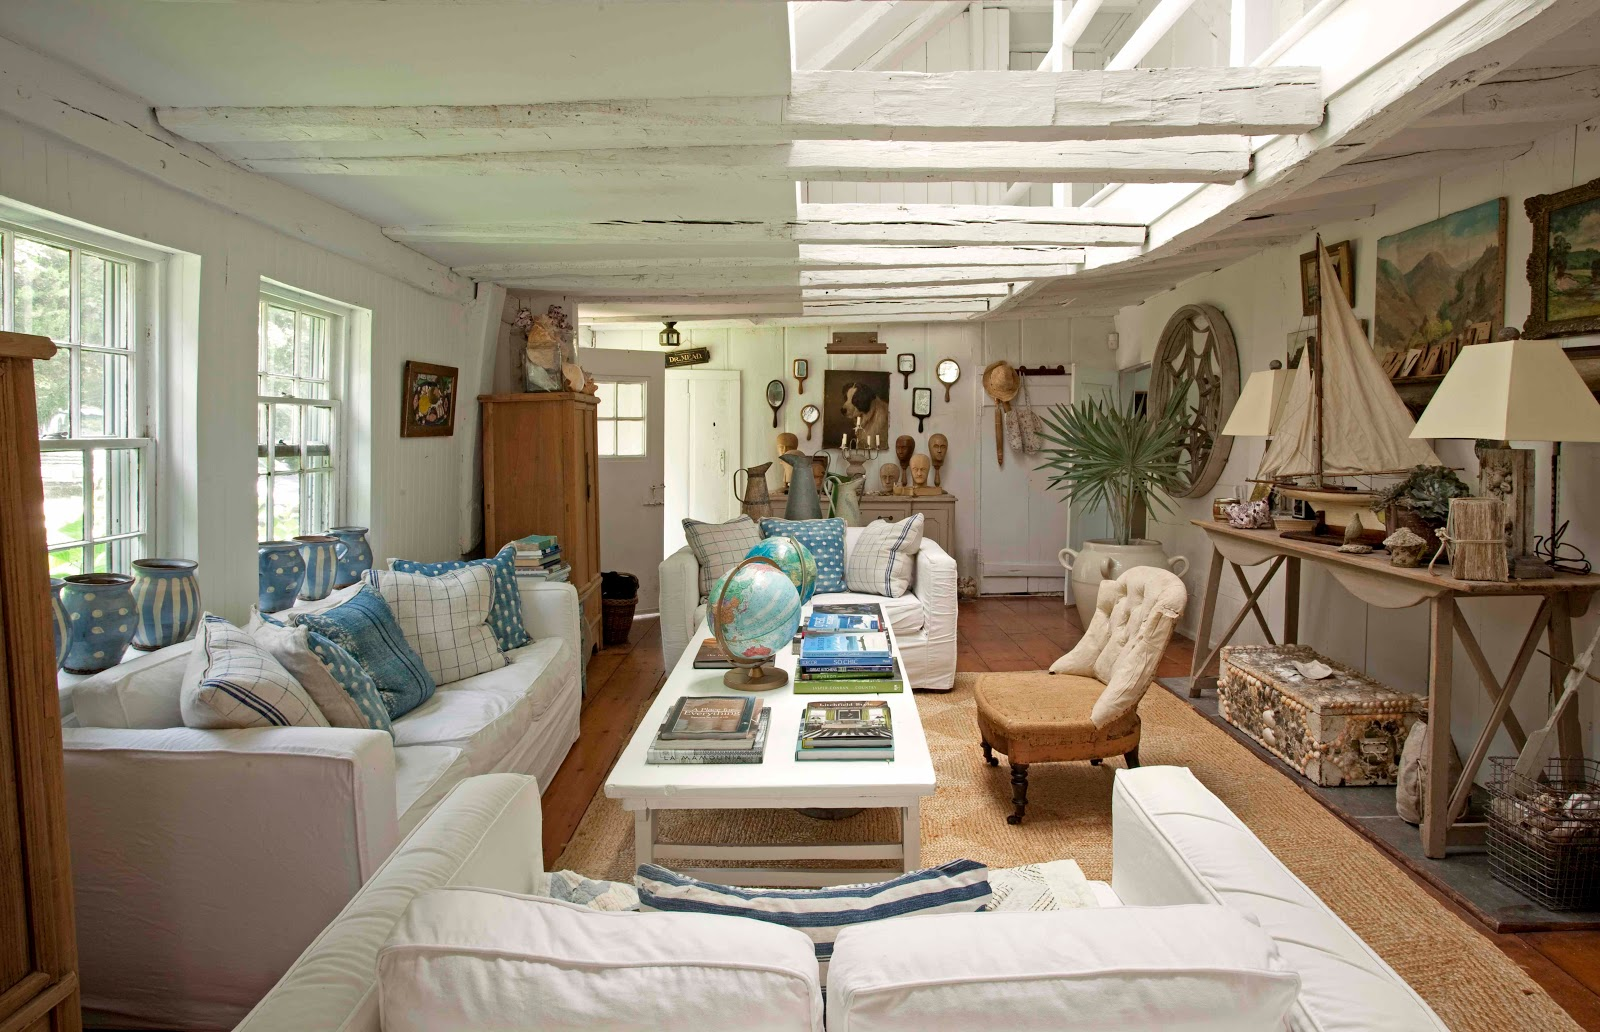 Stylebeat seaside charm rooms that inspire by the sea